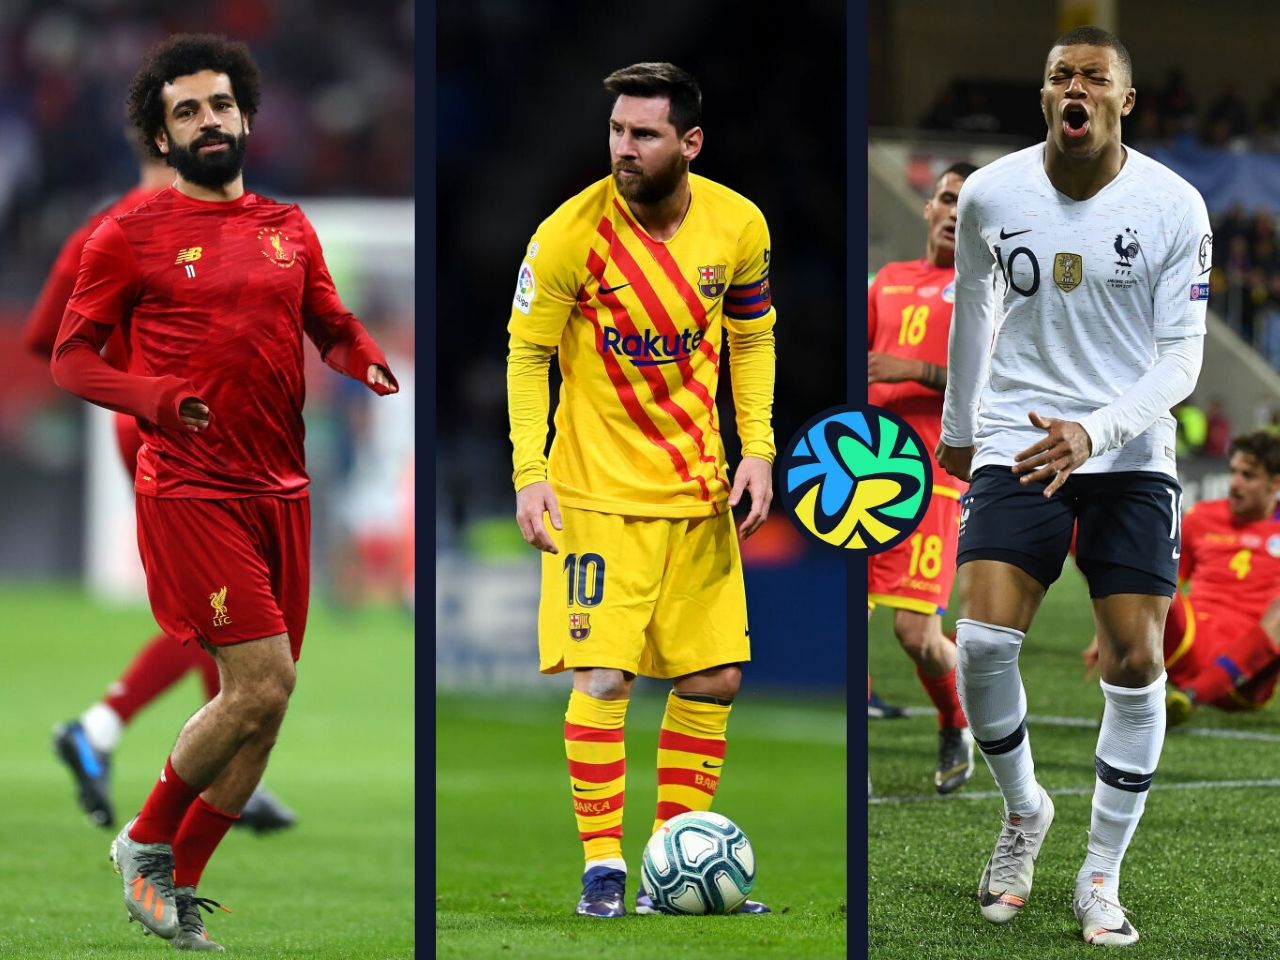 Top 10 Most Valuable Footballers In The World Right Now